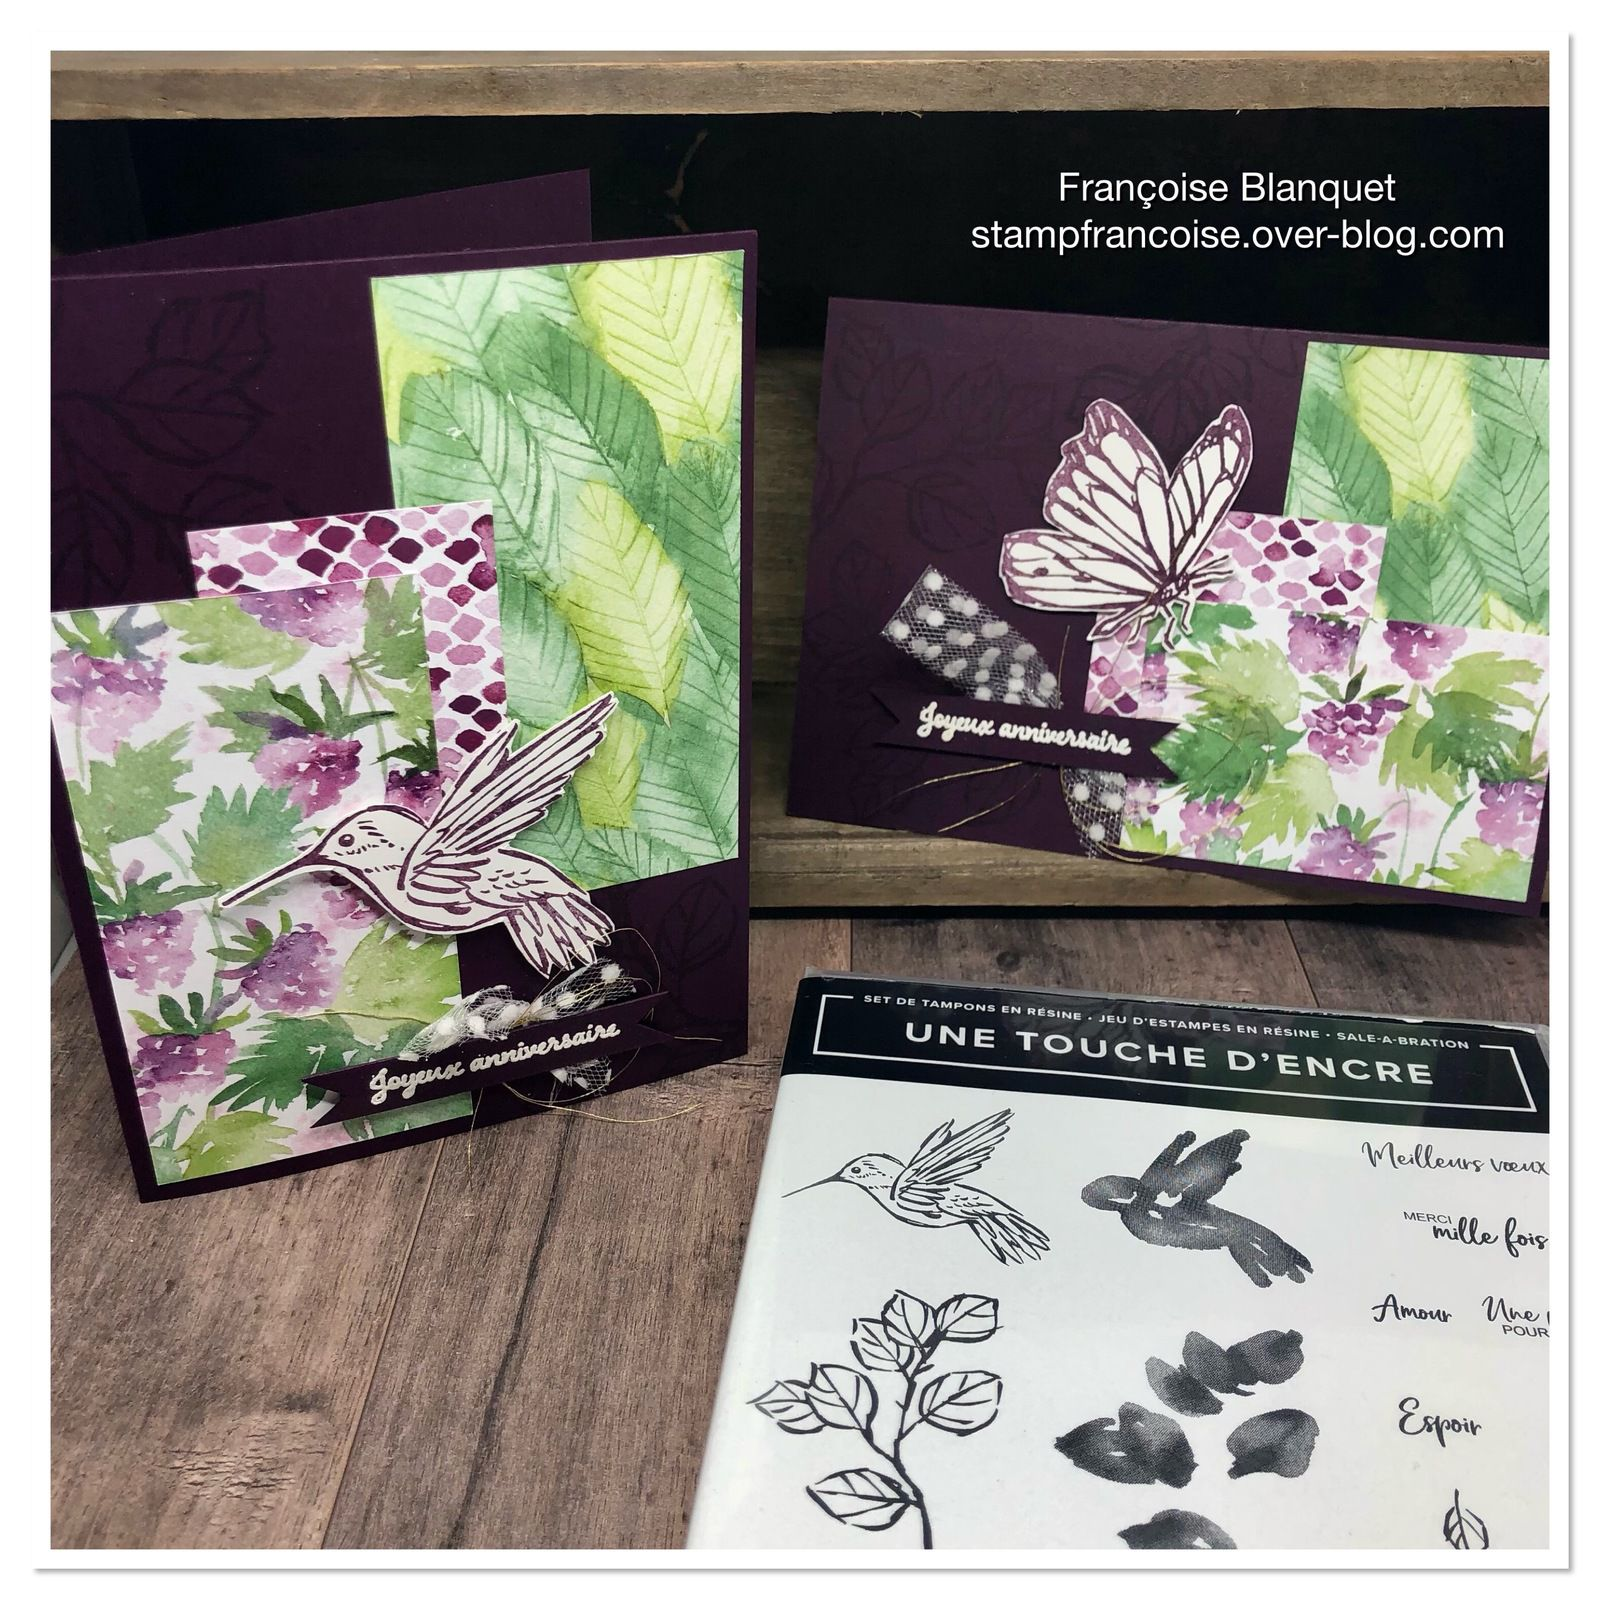 Stampin'Up, Françoise Blanquet , démonstratrice stampin up, Catalogue annuel 2020 , independent demonstrator, Stampin Up demonstrator,   creative coach, DBWS,demonstrator business web site, host a workshop, attend a class, join Stampin' Up!,creative projects, project gallery, Stampin' Up! products, online ordering, online store, shop online, order online, online 24/7, Stampin'Up , coach creatif,  site démonstratrice, passer commande , atelier creatif , comment passer une commande,  rejoindre stampin'up , accueillir un atelier , commande en ligne,  commande 24/24 , ********, beaux papiers, encreurs, dies , poinçons , coupe papiers , massicot , carterie, ceremonies , cadeaux  naissance , baptêmes, anniversaire, communions, mariage, condoleance , gratuit, Tuto, Tutos gratuits, video gratuite , you tube, instagram, Facebook,